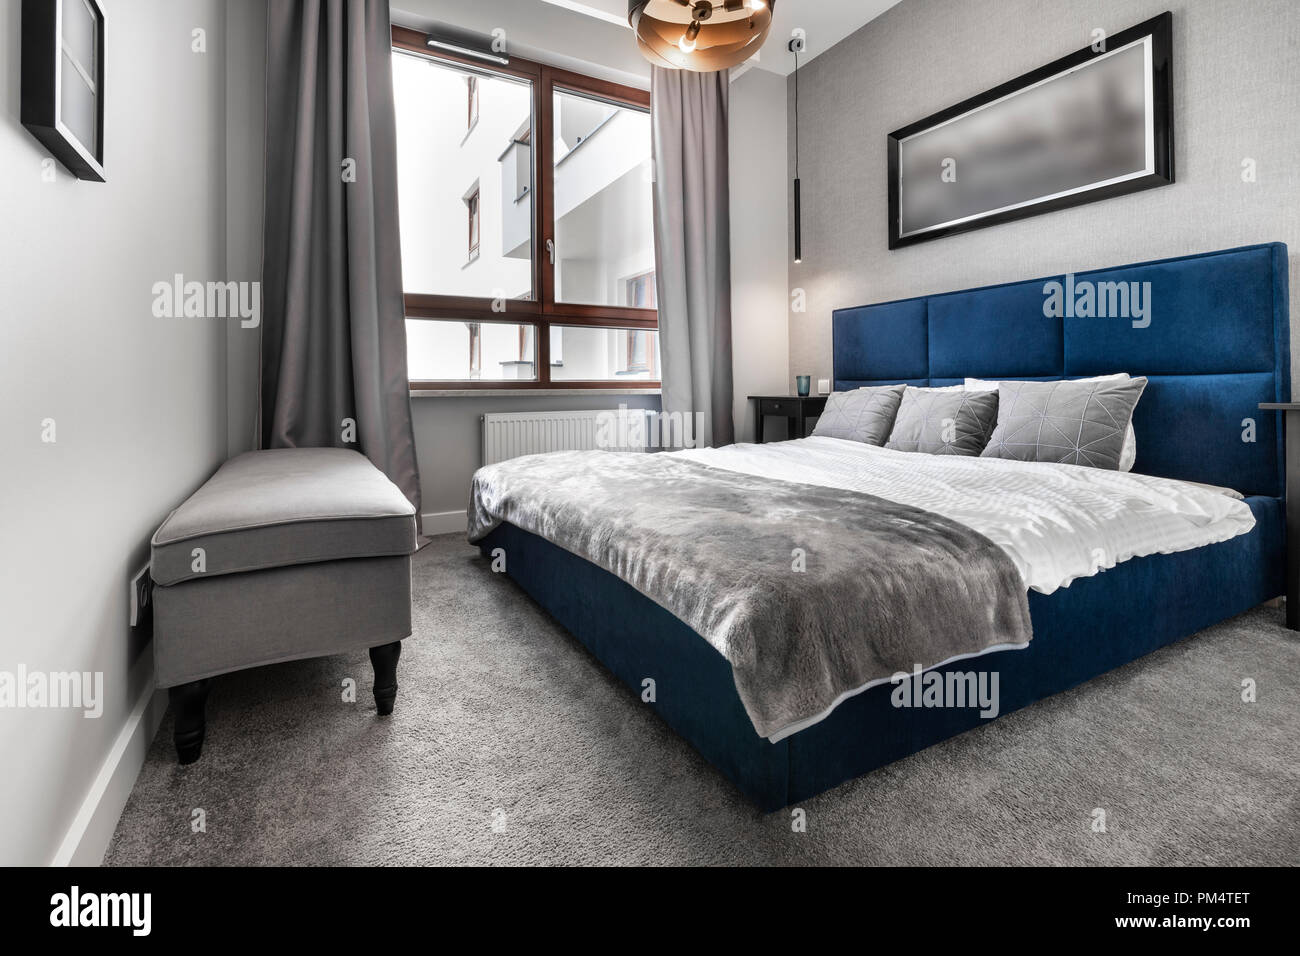 Modern bedroom in gray finishing with blue bed Stock Photo ...